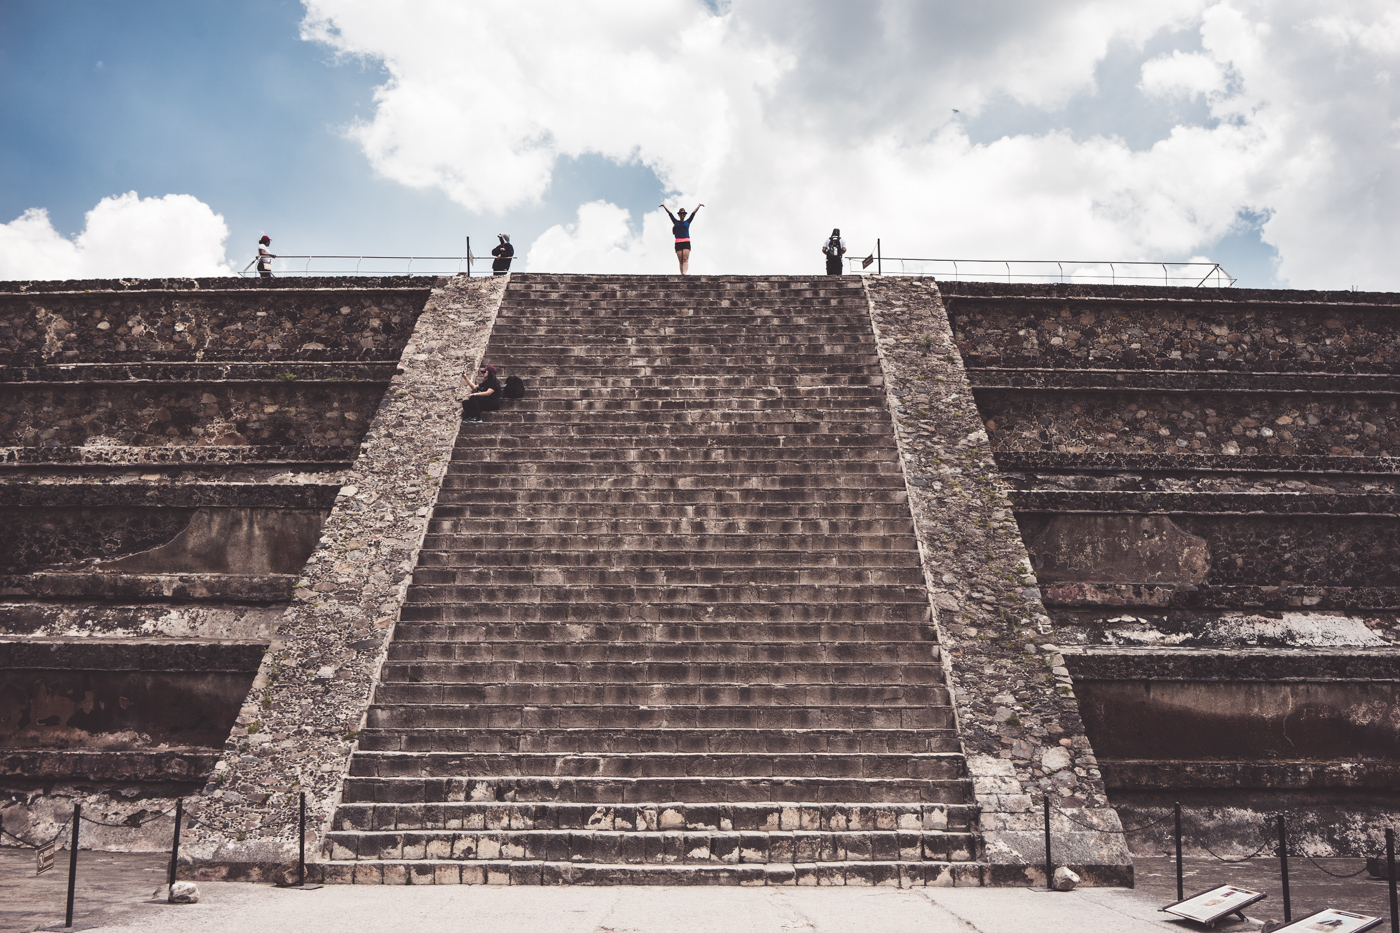 Diana at the top of the platform in La Ciudadela of Teotihuacán